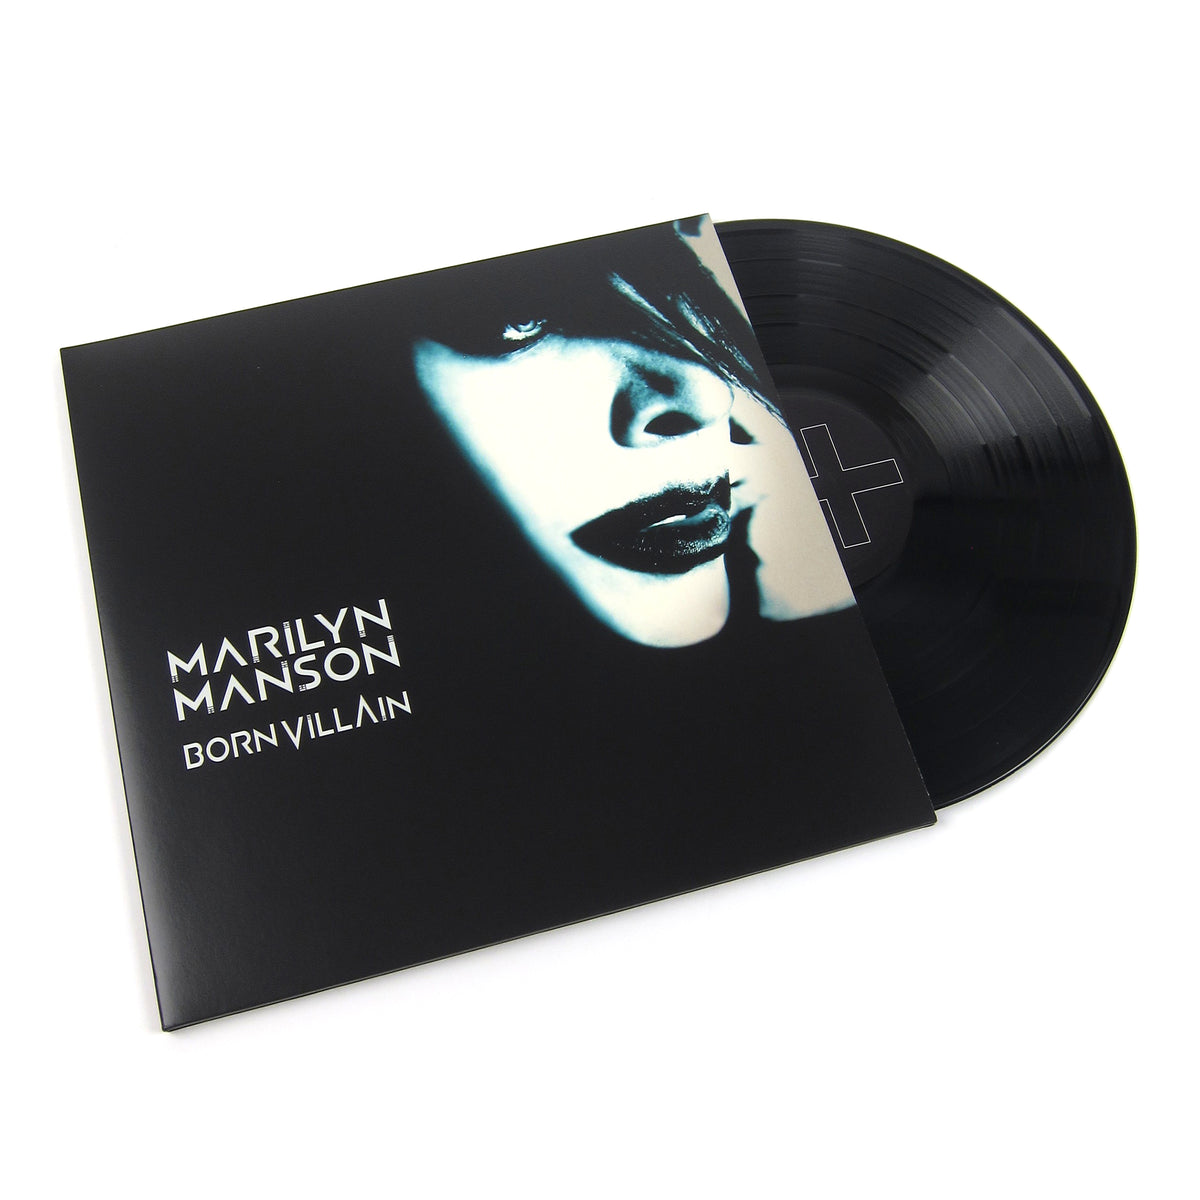 Marilyn Manson: Born Villain (180g) Vinyl 2LP